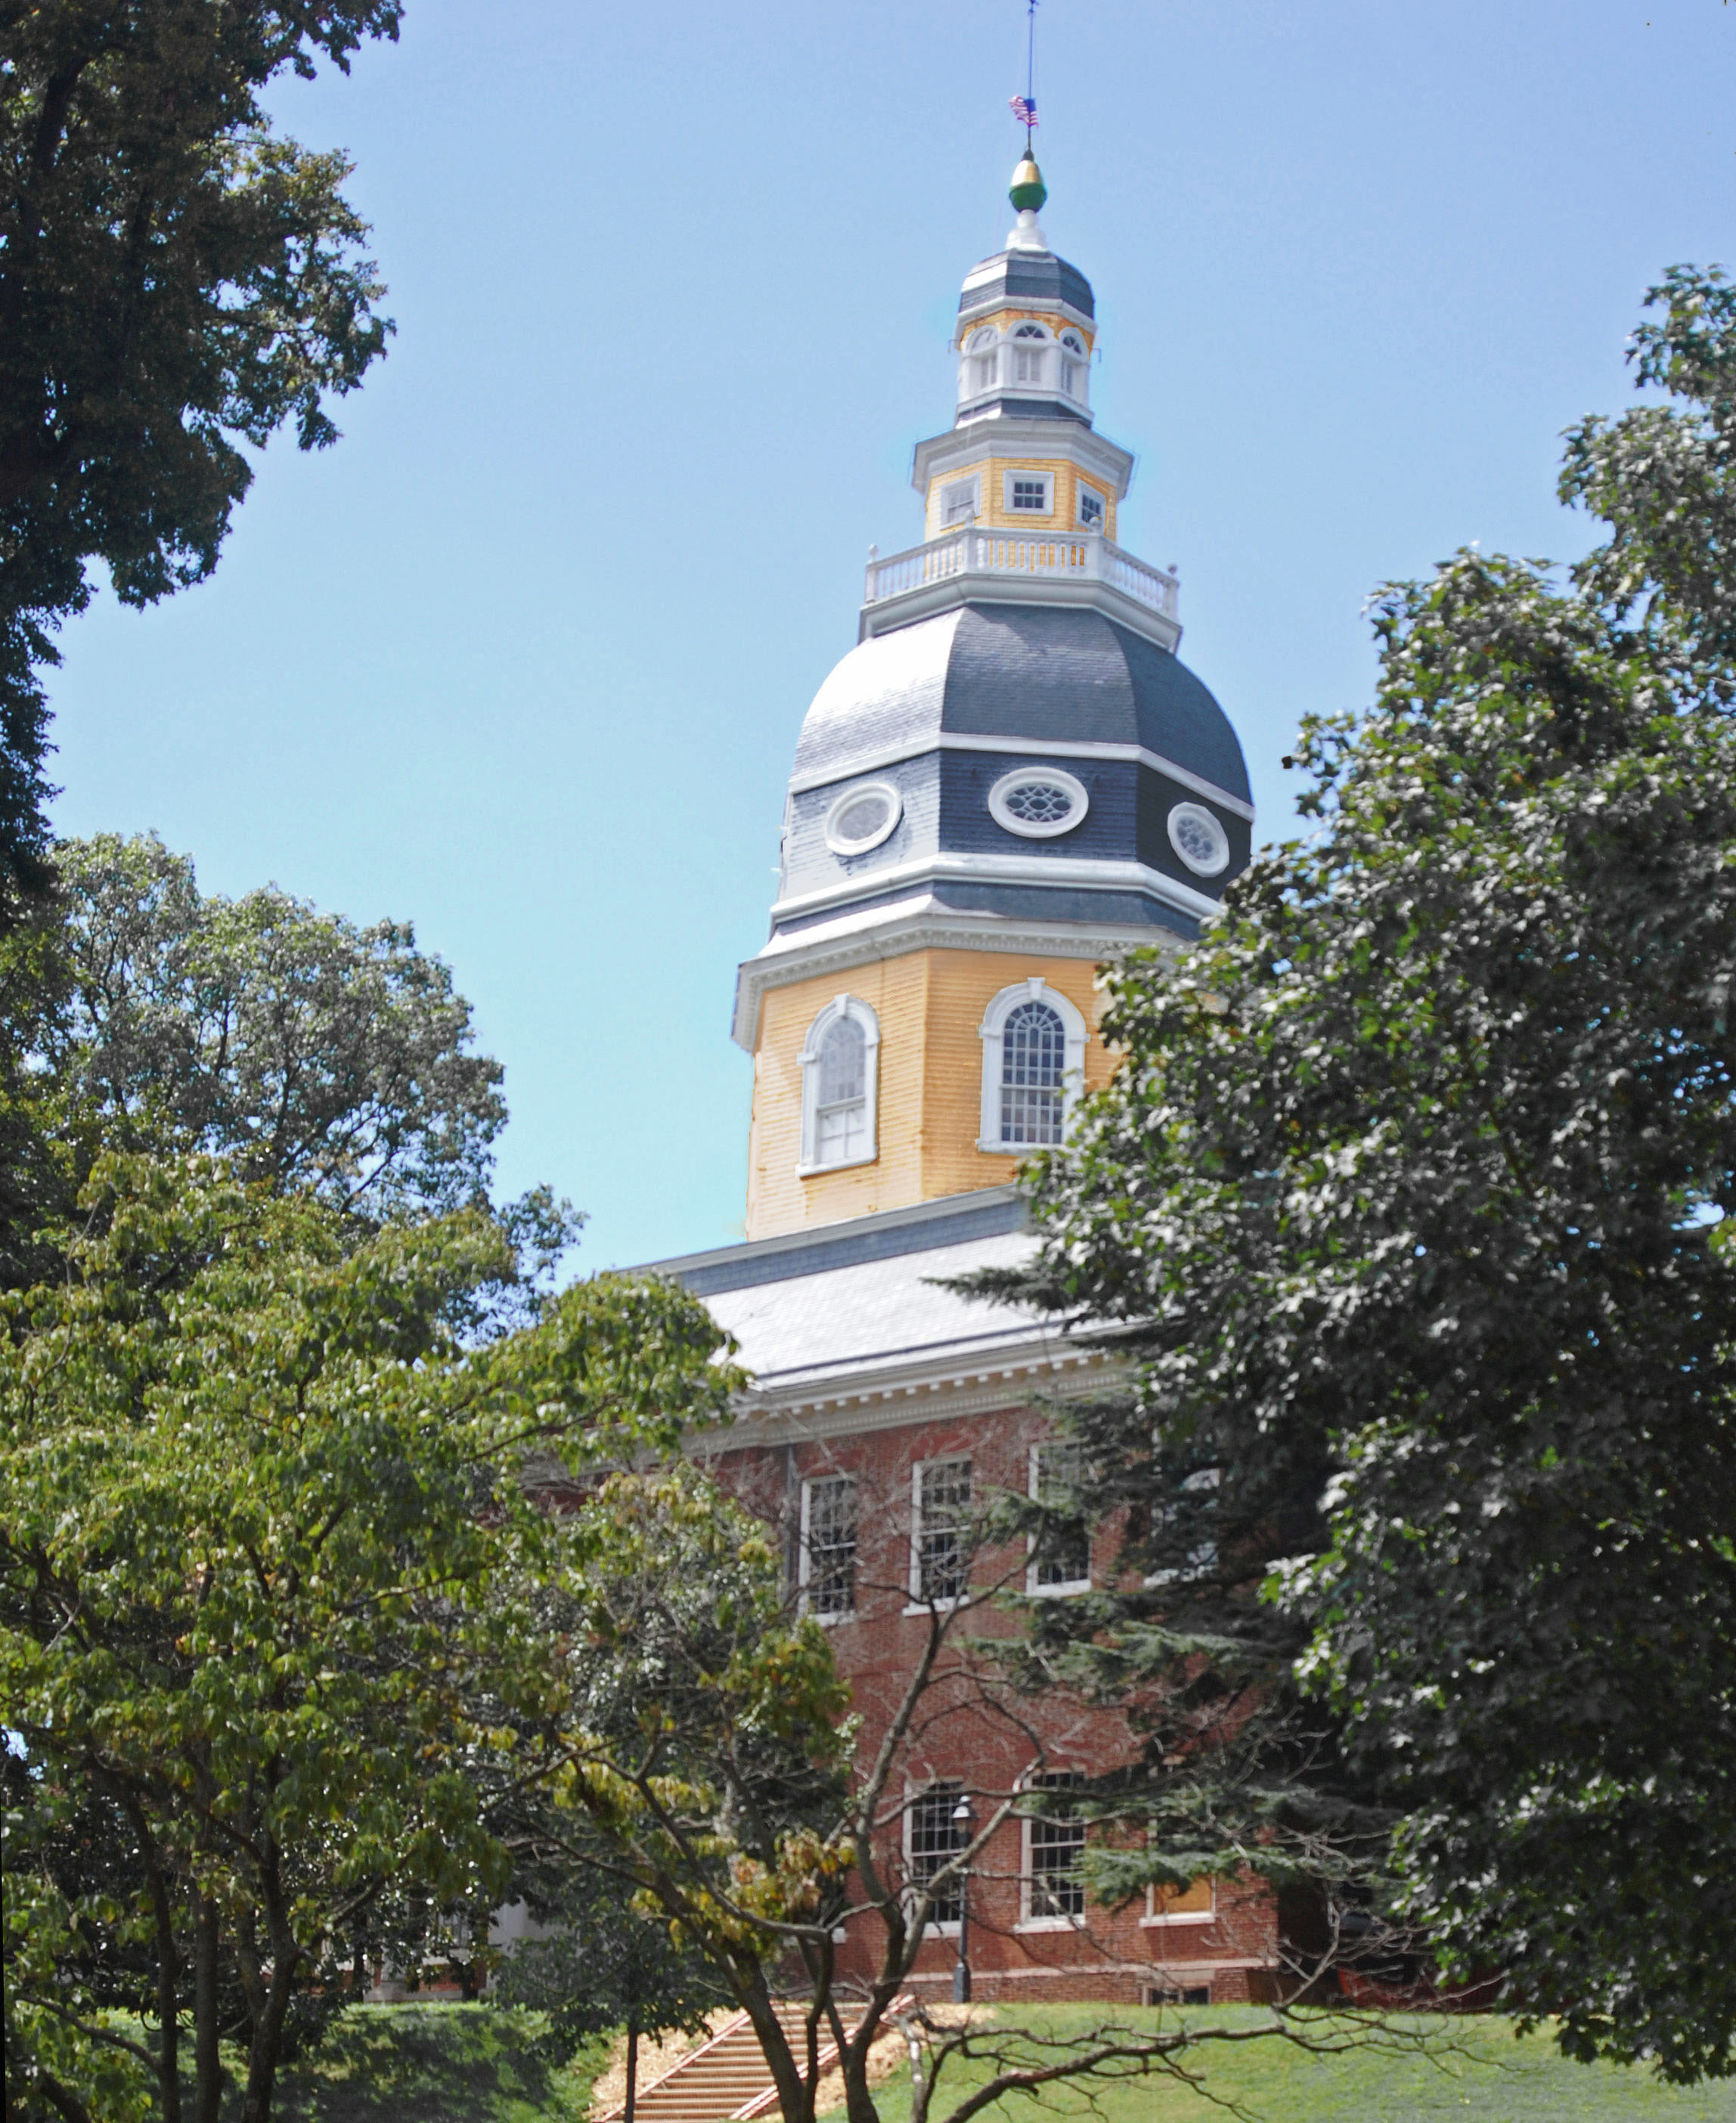 Rendering of original Maryland State House Dome colors as viewed from State Circle. Image by Malcolm Dax, 2010